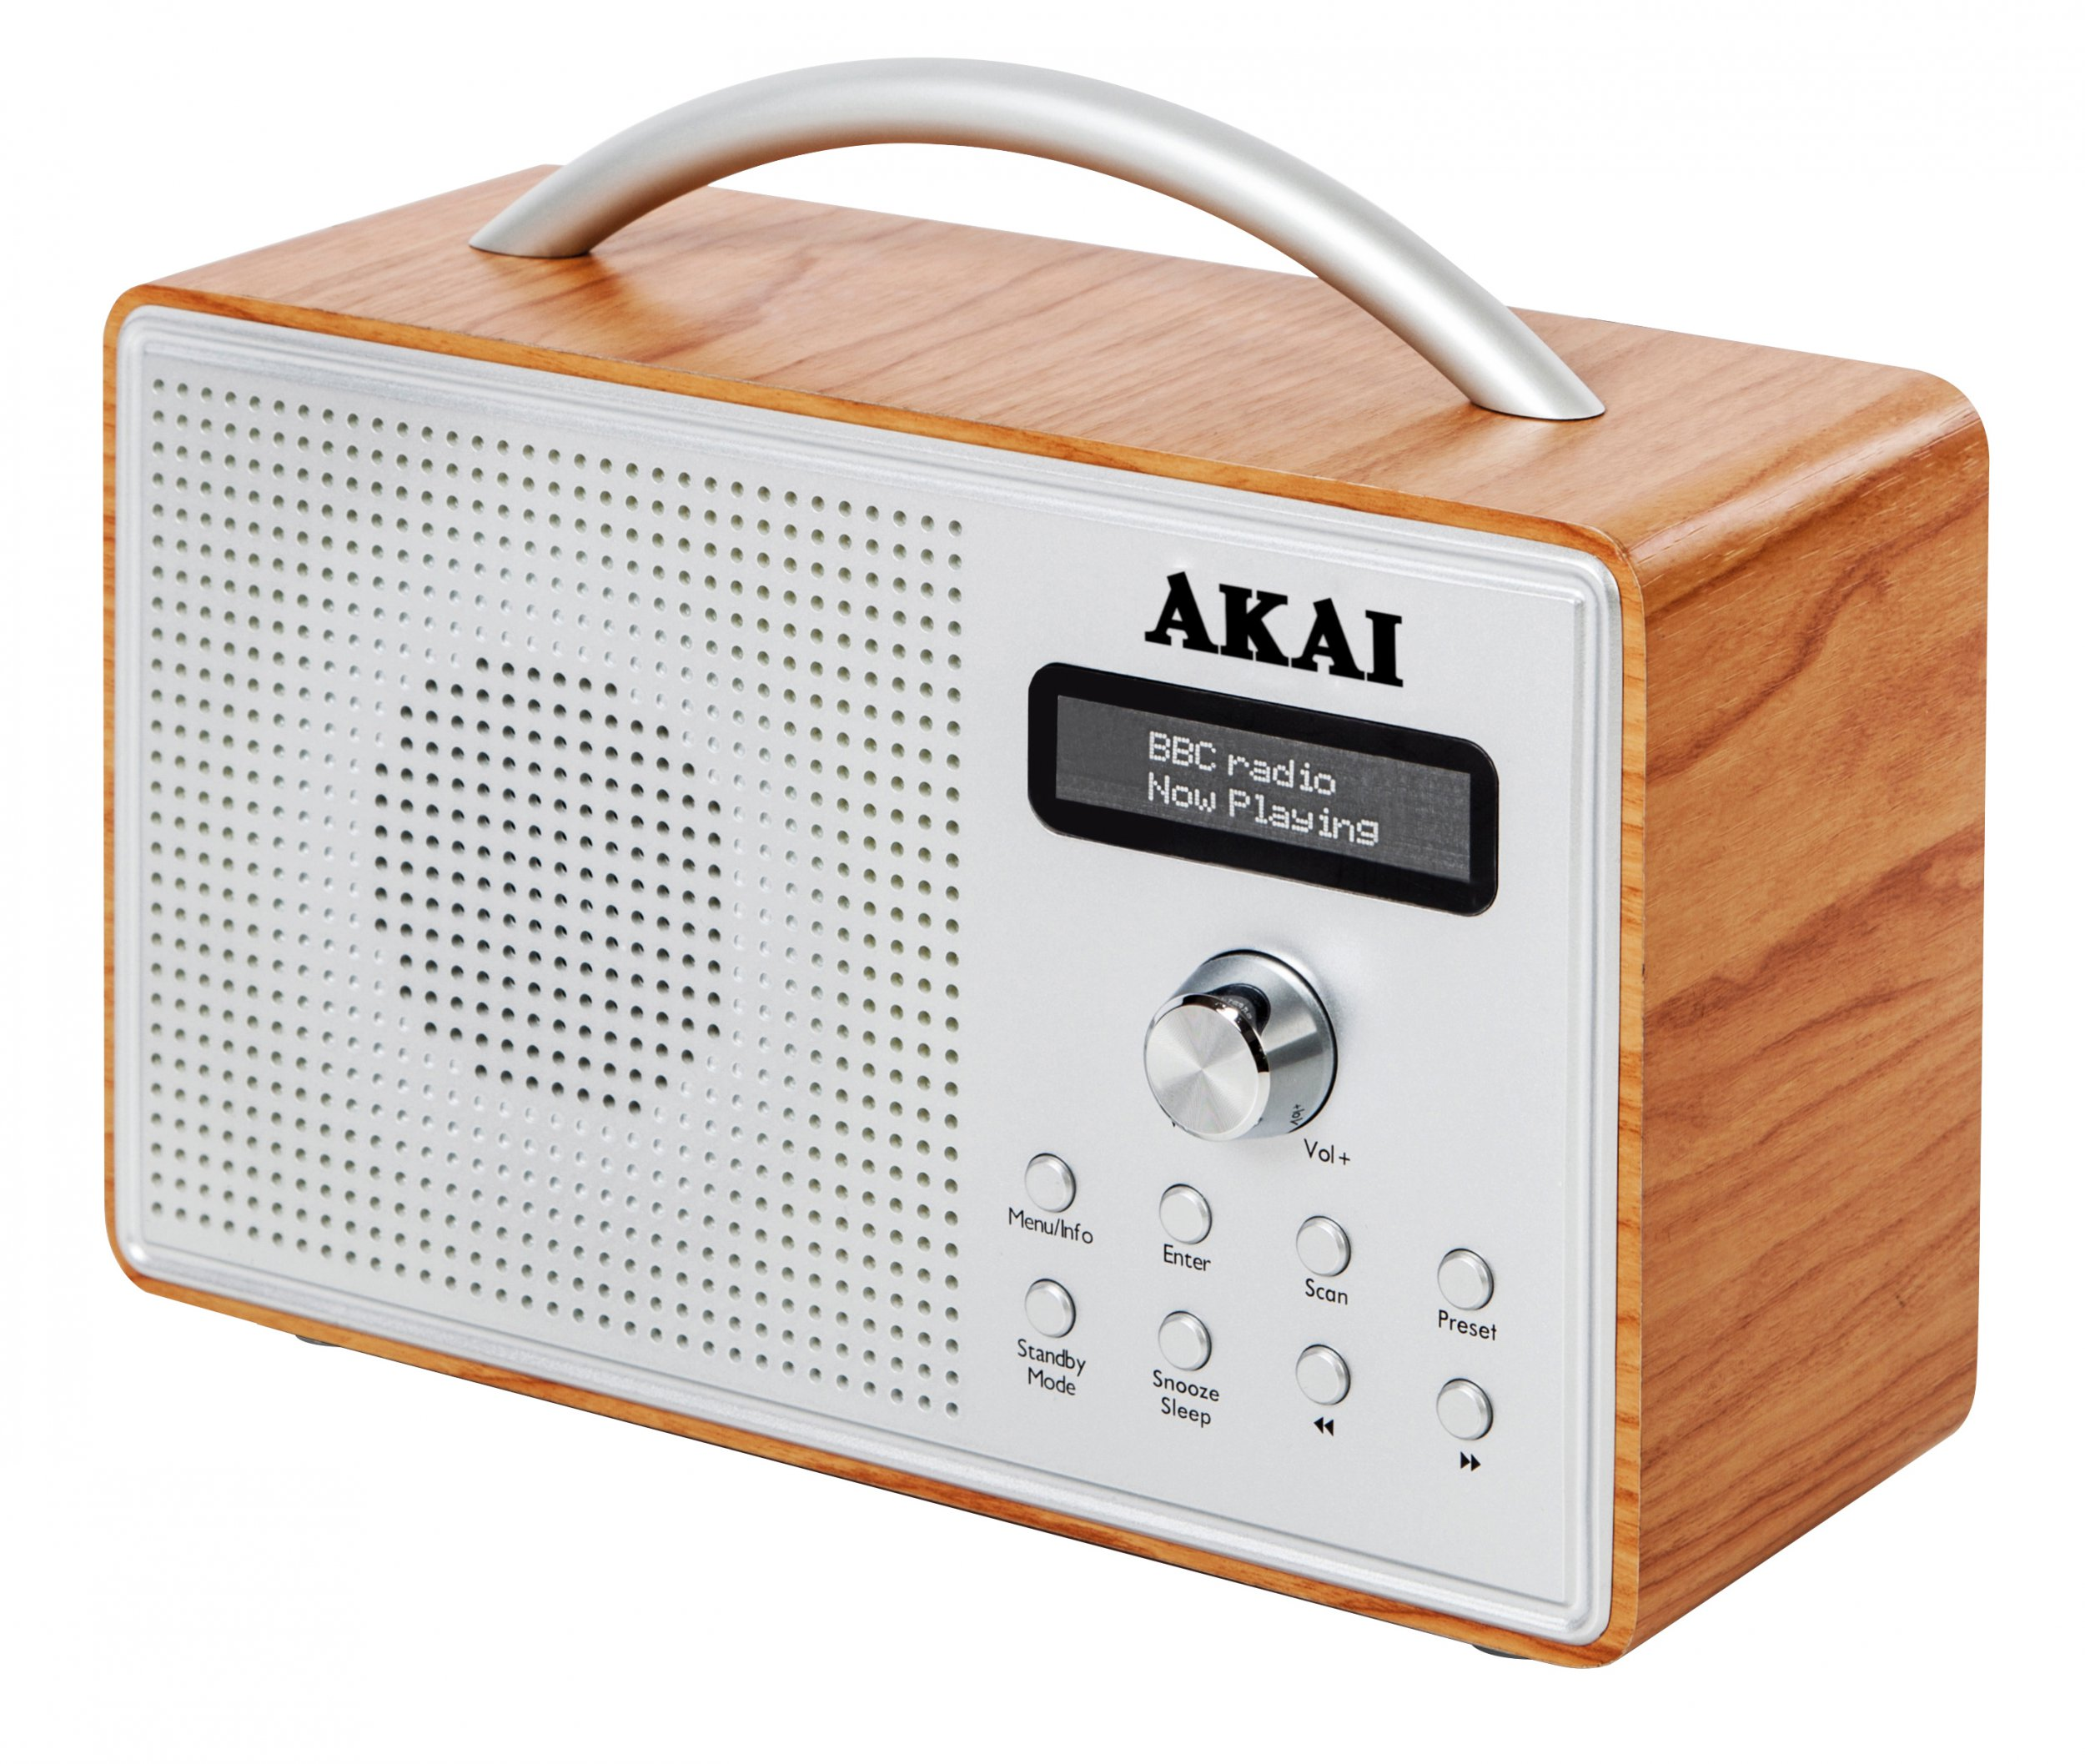 Akai Wood Dab Radio Oak With Lcd At Barnitts Online Store